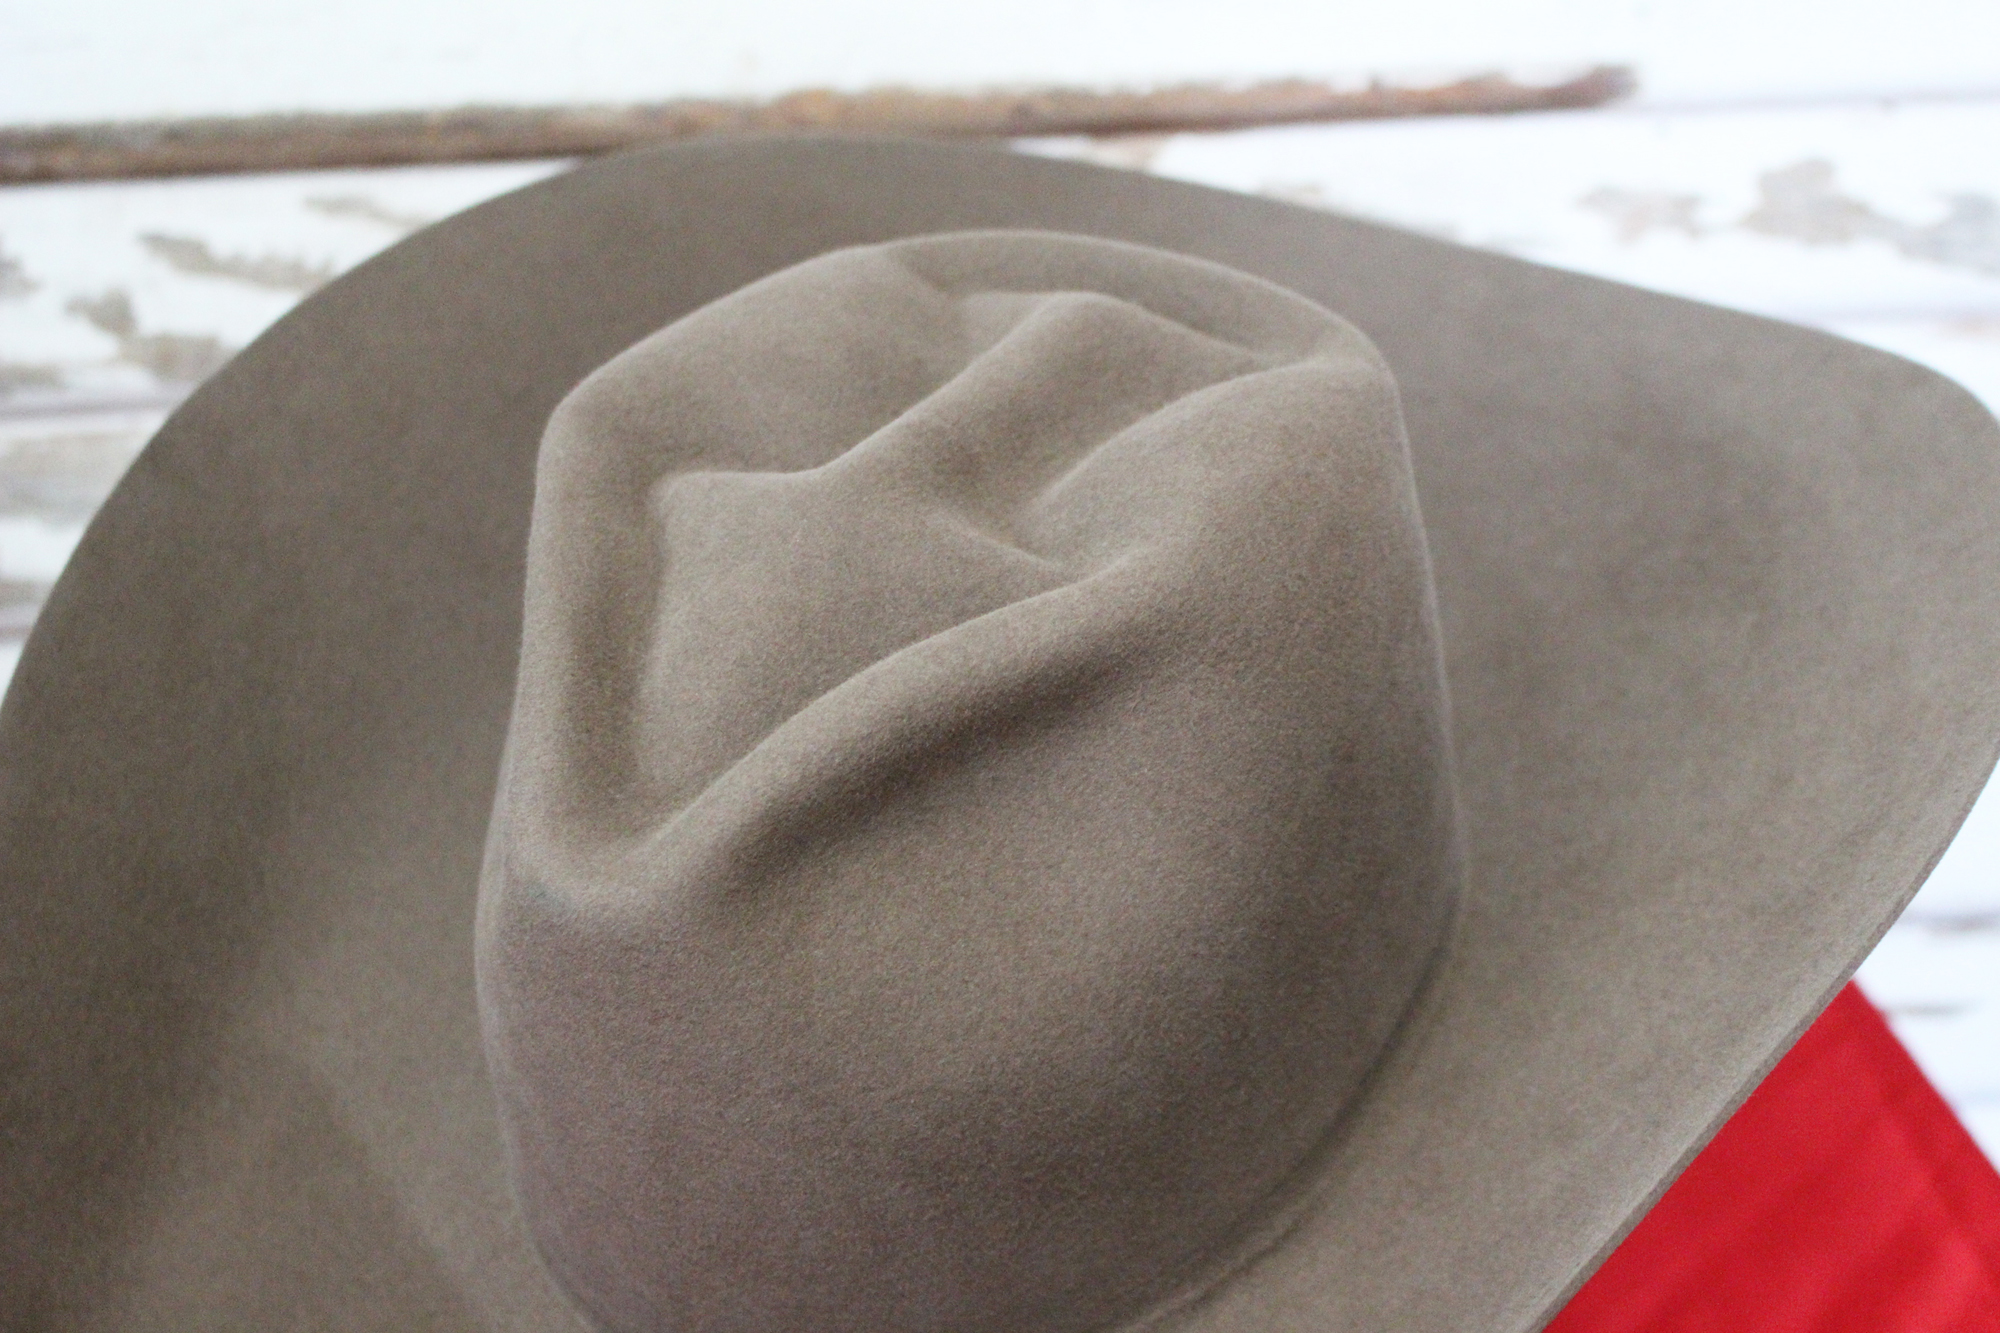 style your profile � what your style cowboy hat says about